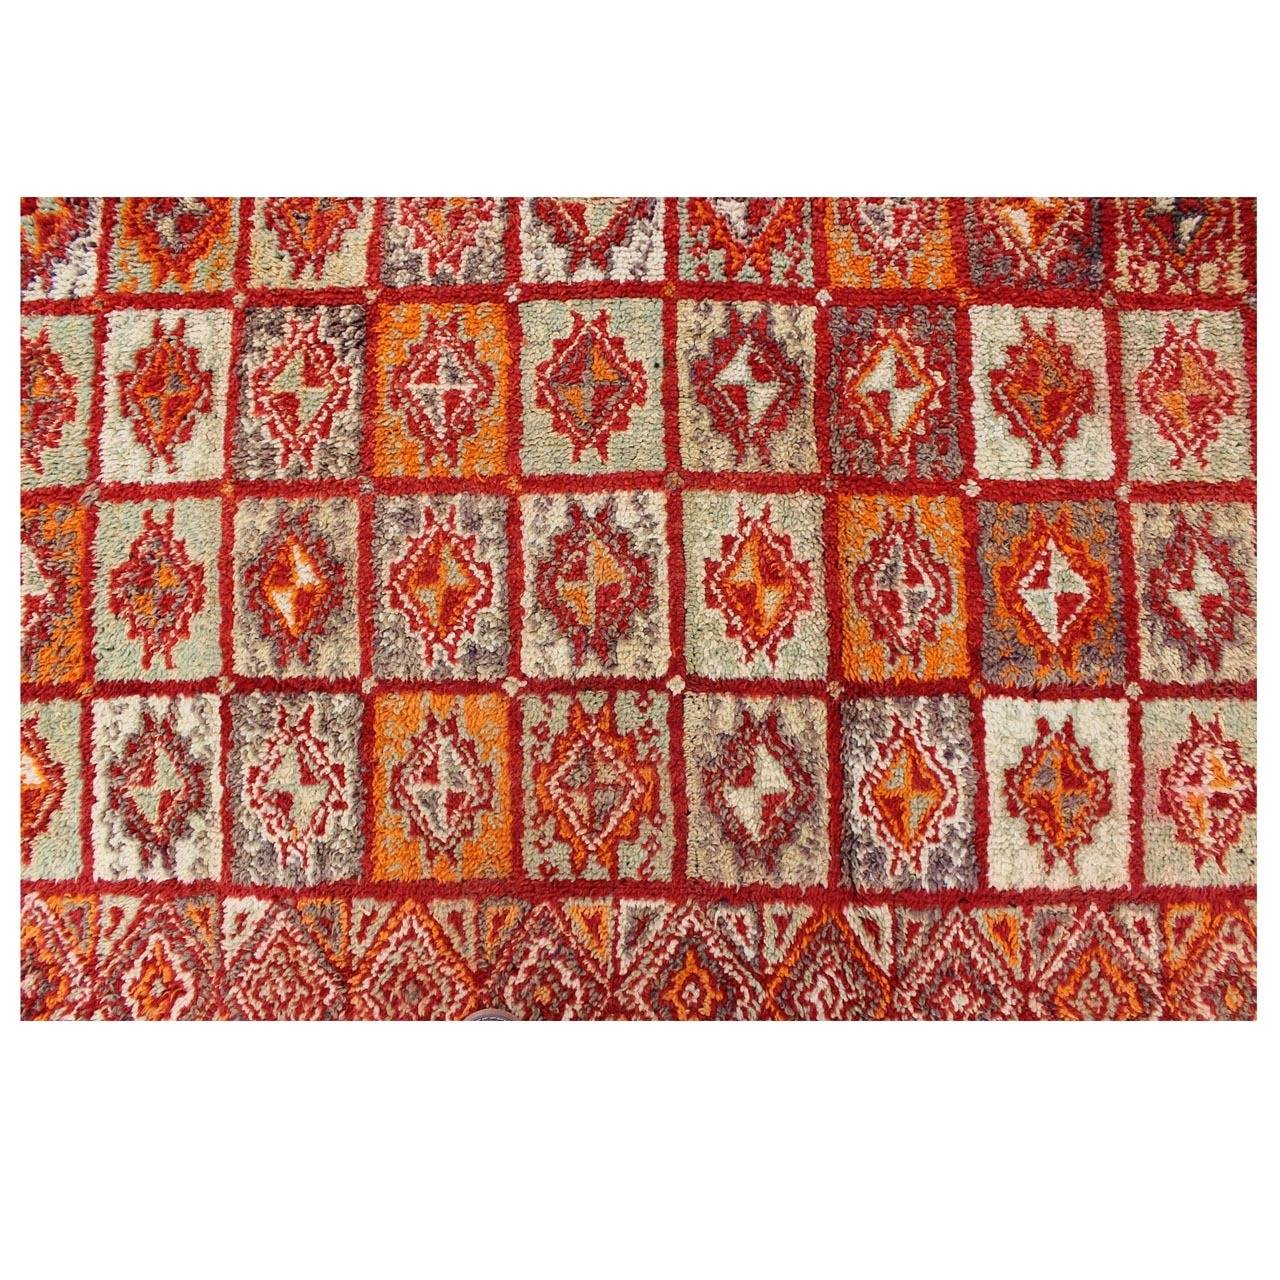 Colorful moroccan rug for sale at 1stdibs for Colorful rugs for sale